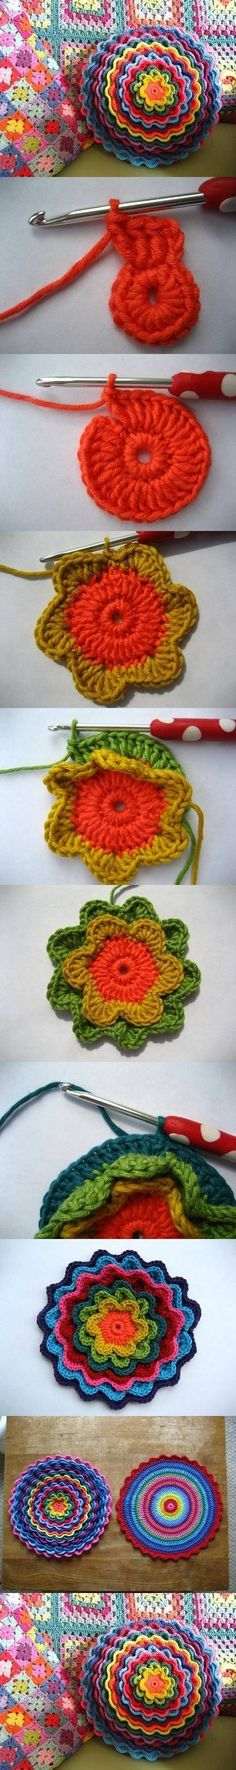 DIY Crochet Flower Pattern DIY Crochet Flower Pattern I was thinking you could make two and turn it into a pillow.